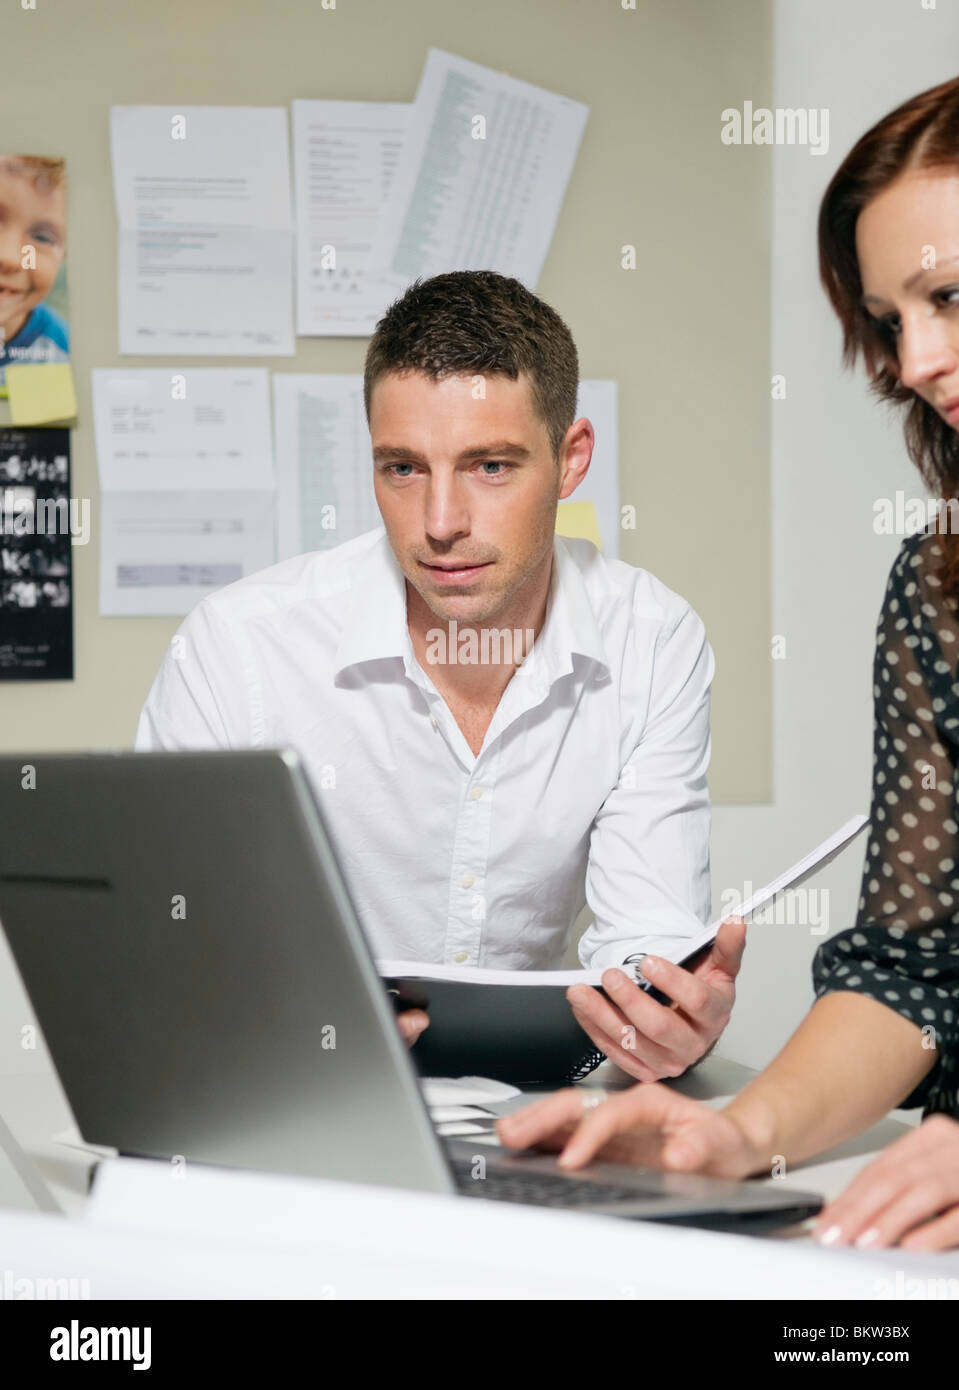 Two people at desk look at computer - Stock Image